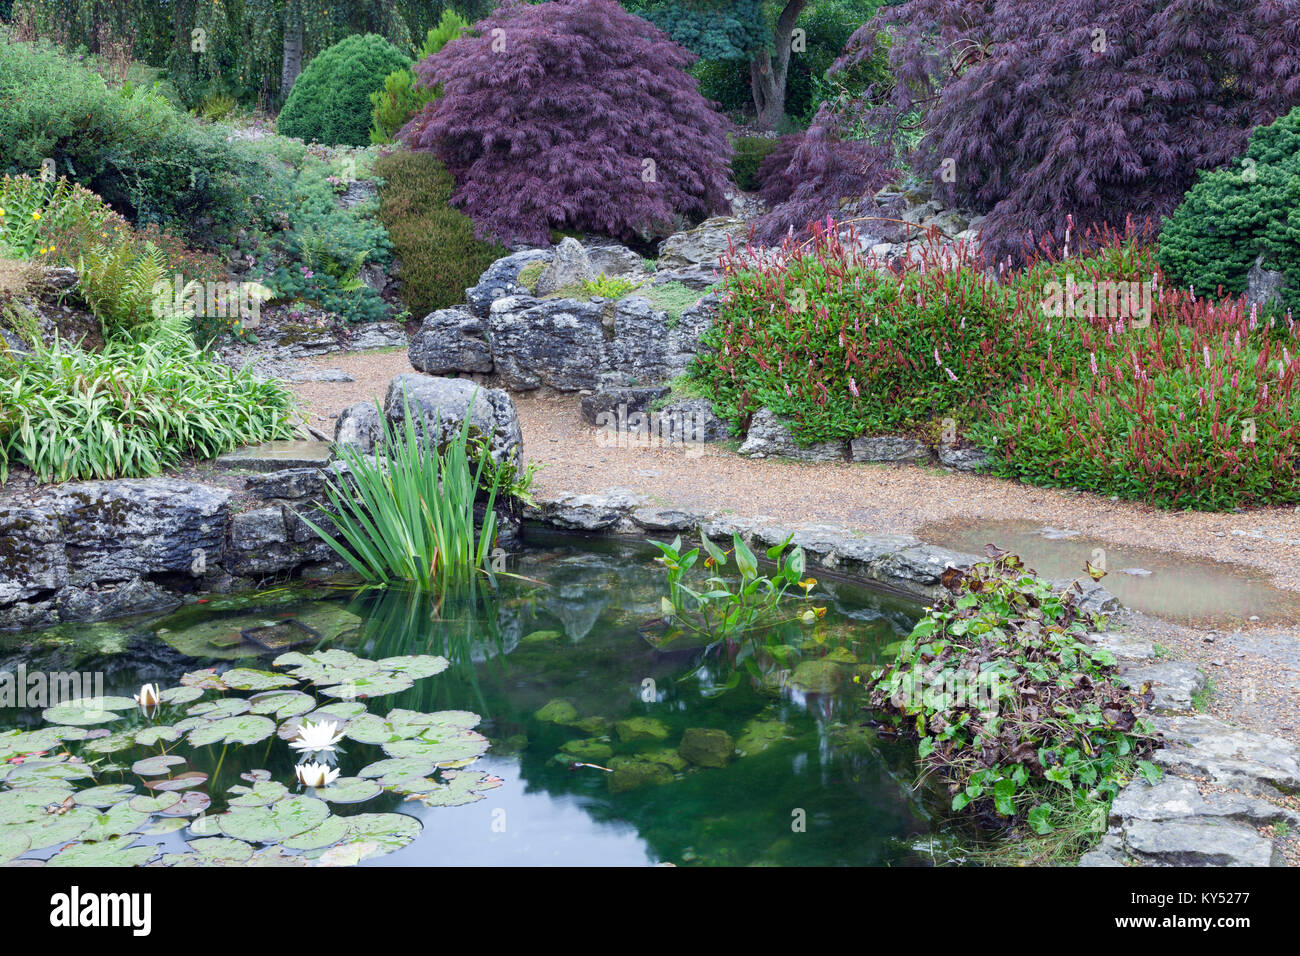 rockery pond stockfotos rockery pond bilder alamy. Black Bedroom Furniture Sets. Home Design Ideas